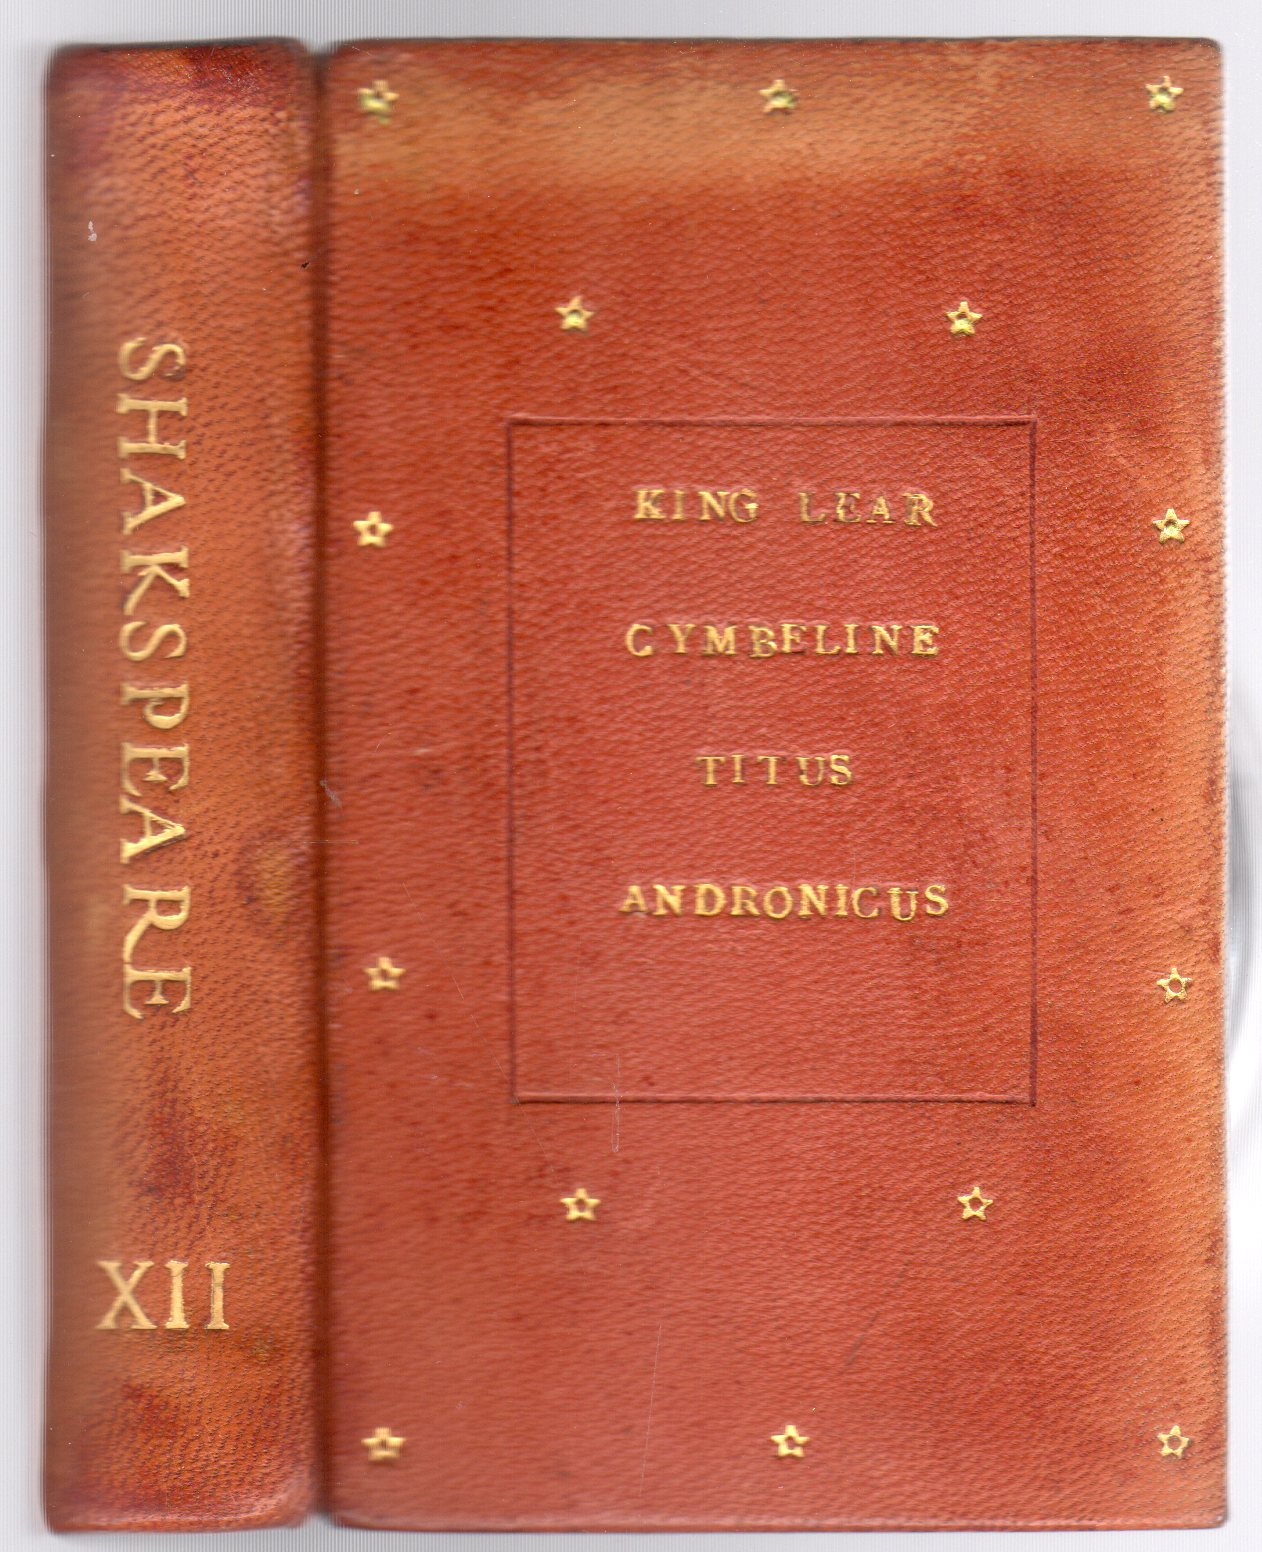 Image for The Handy-Volume Shakspeare. Vol. XII King Lear, Cymbeline, Titus Andronicus